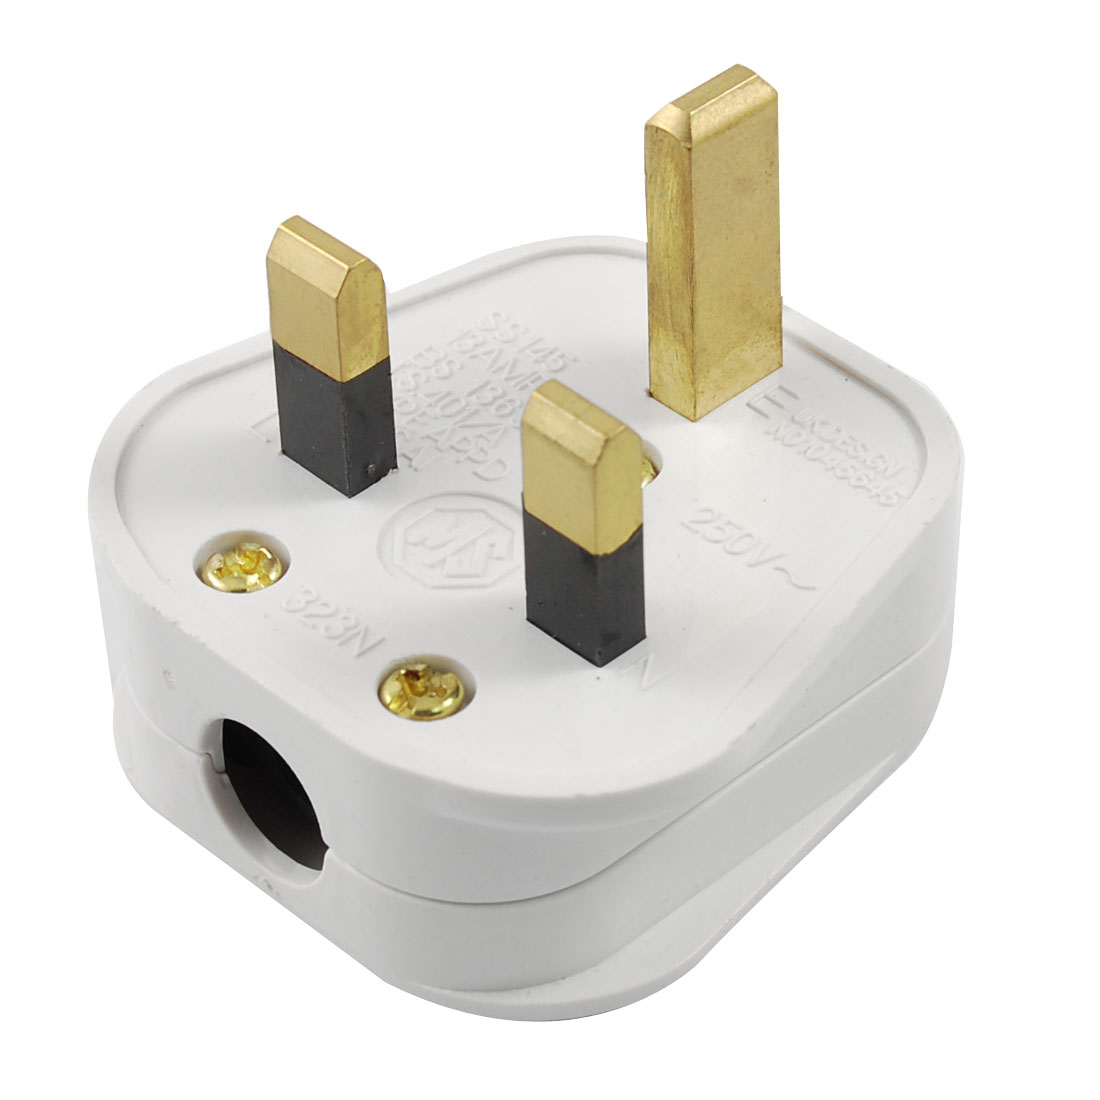 UK Plug AC 250V 13A White Plastic Shell Power Adapter